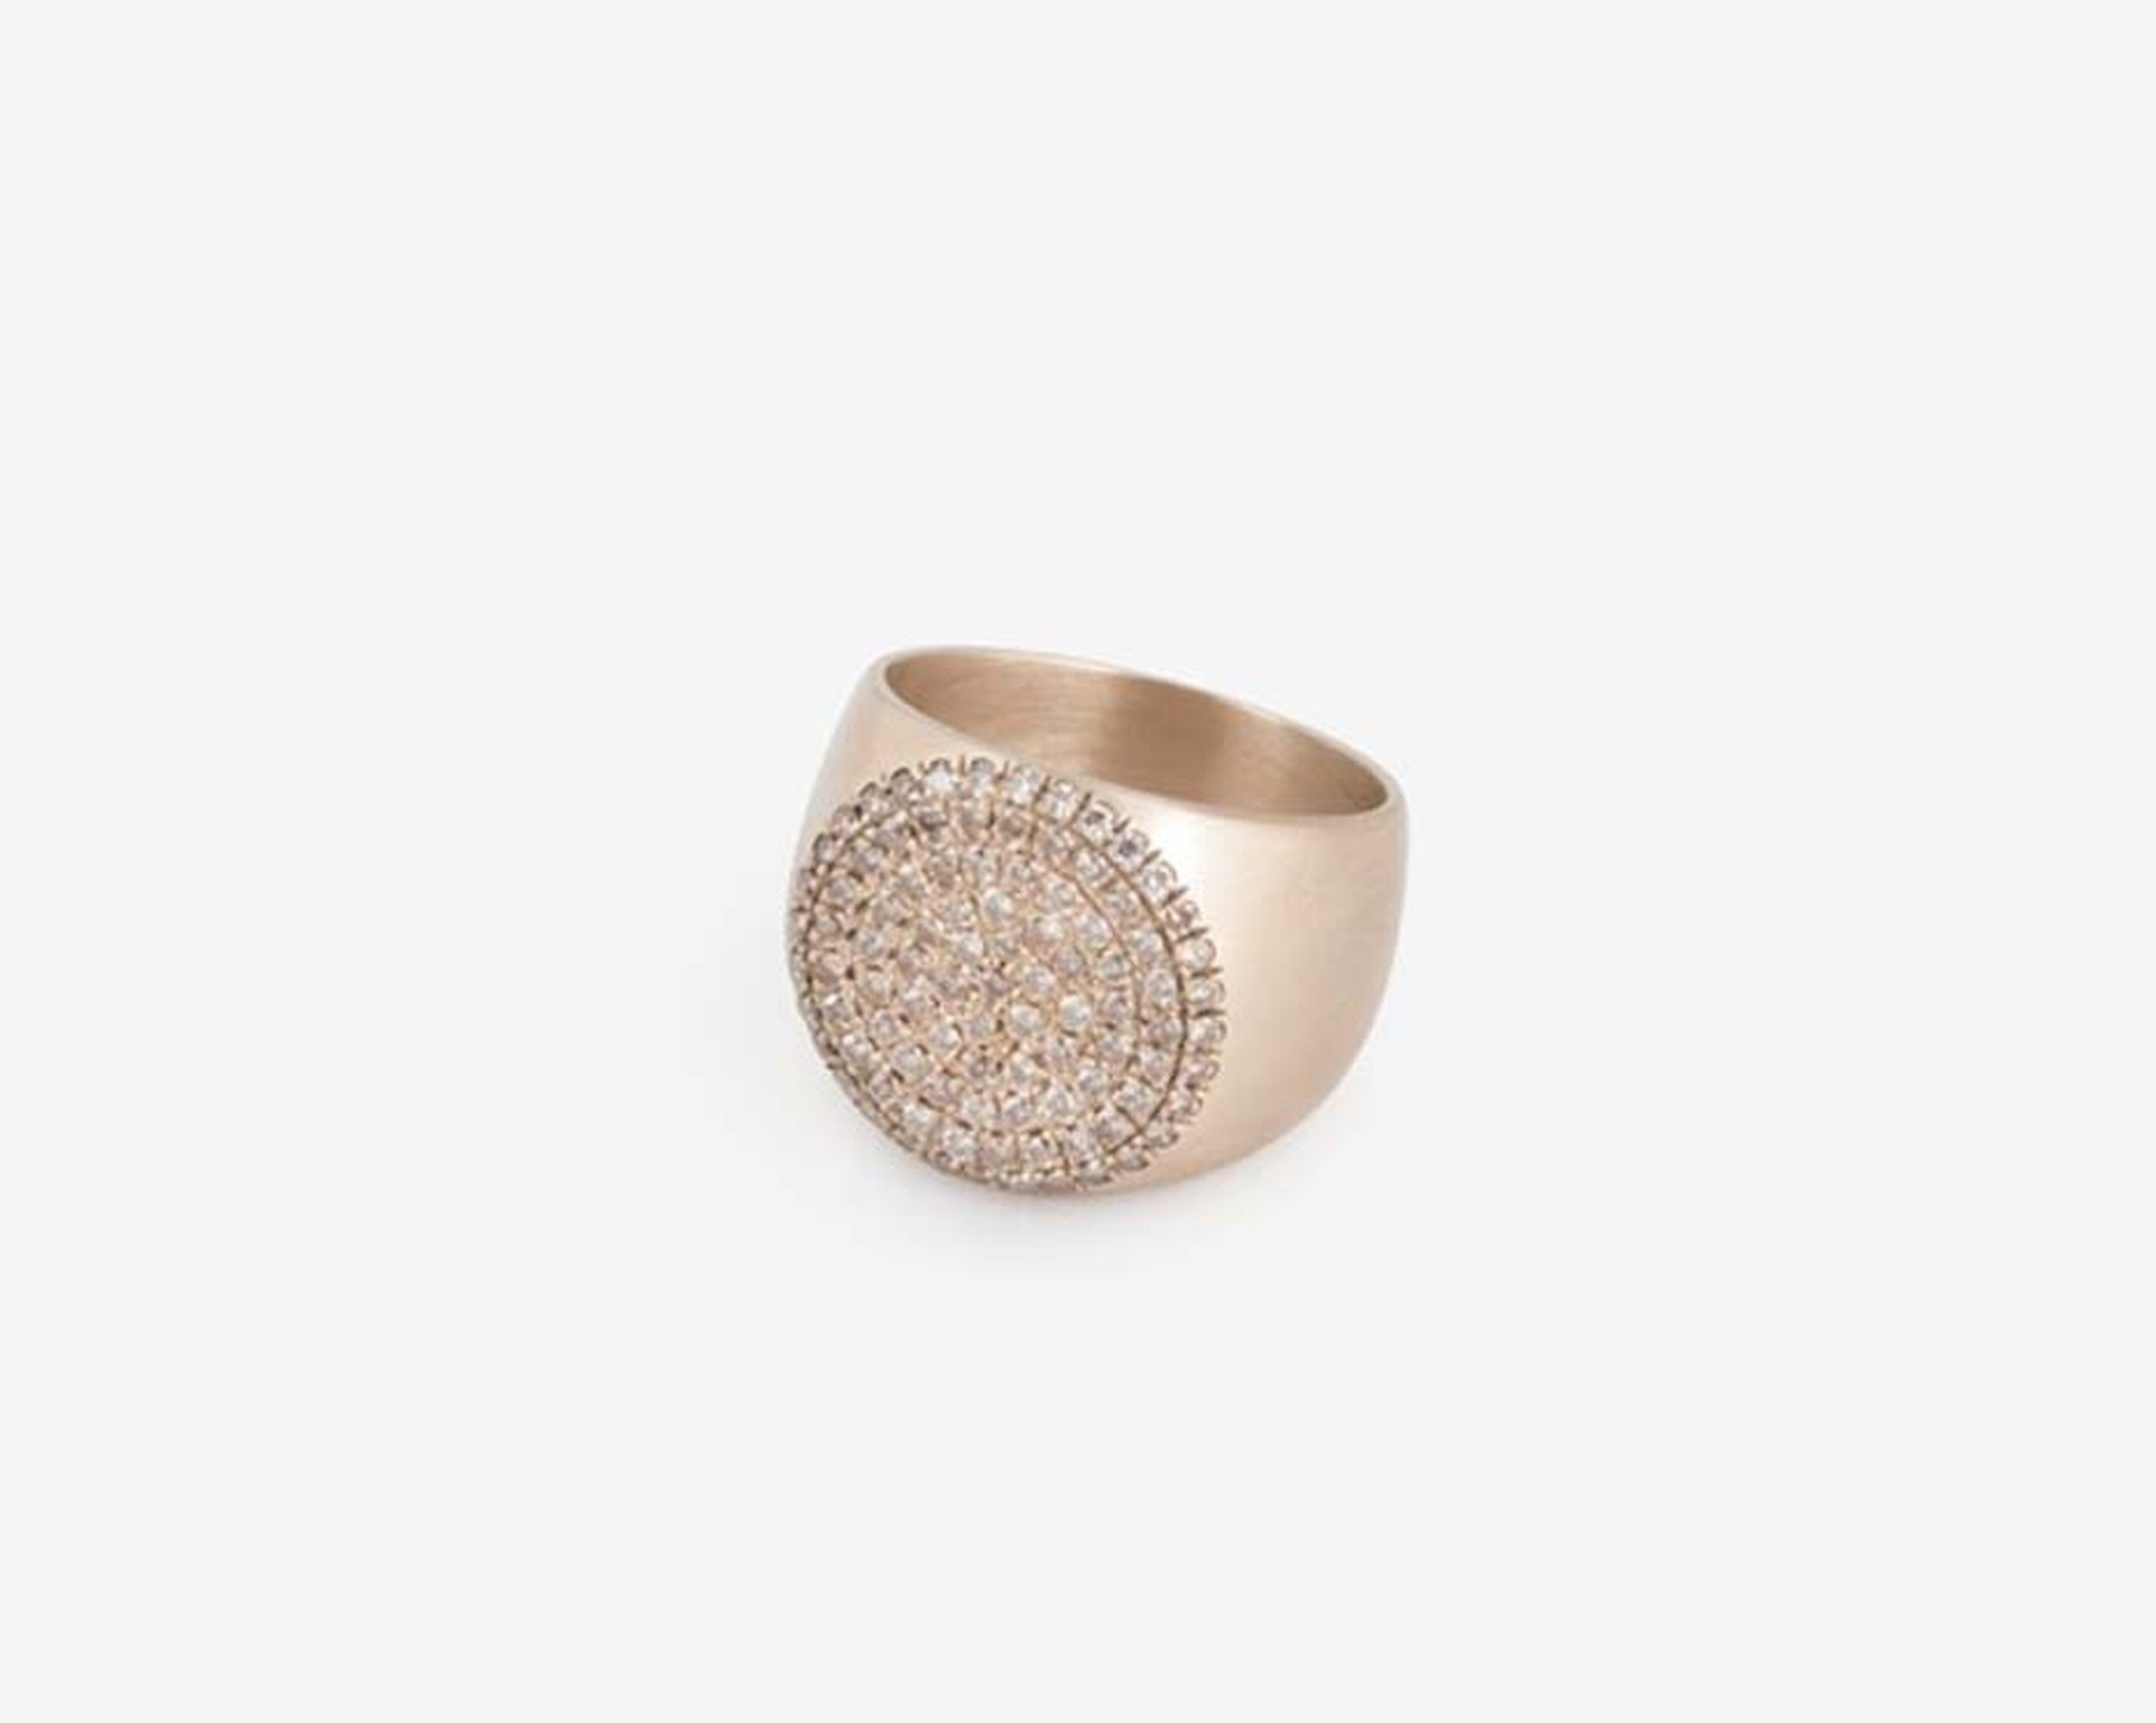 Dina Kamal PNKYRNG collection gold ring with white and champagne coloured diamonds.